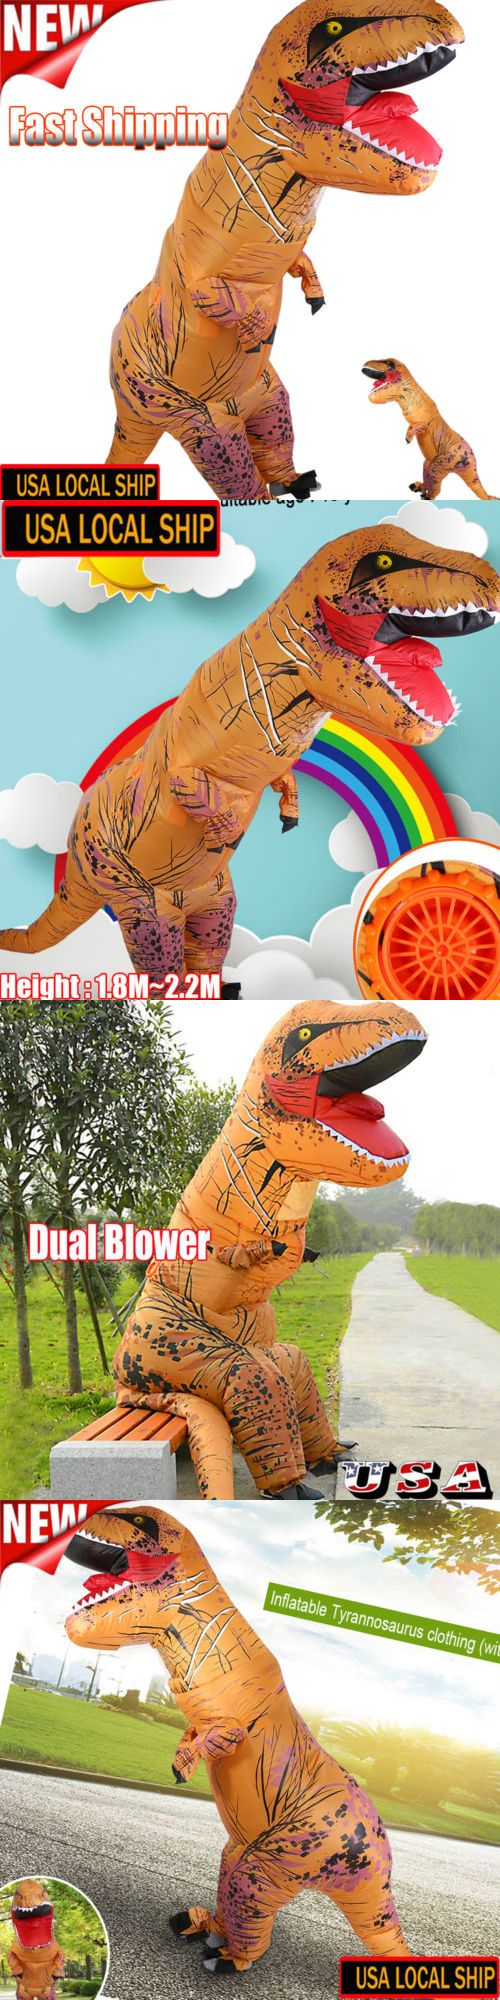 Unisex 86207: 2017 Inflatable Dinosaur T Rex Costume Fantasia Adult Halloween Cosplay Costume -> BUY IT NOW ONLY: $46.82 on eBay!